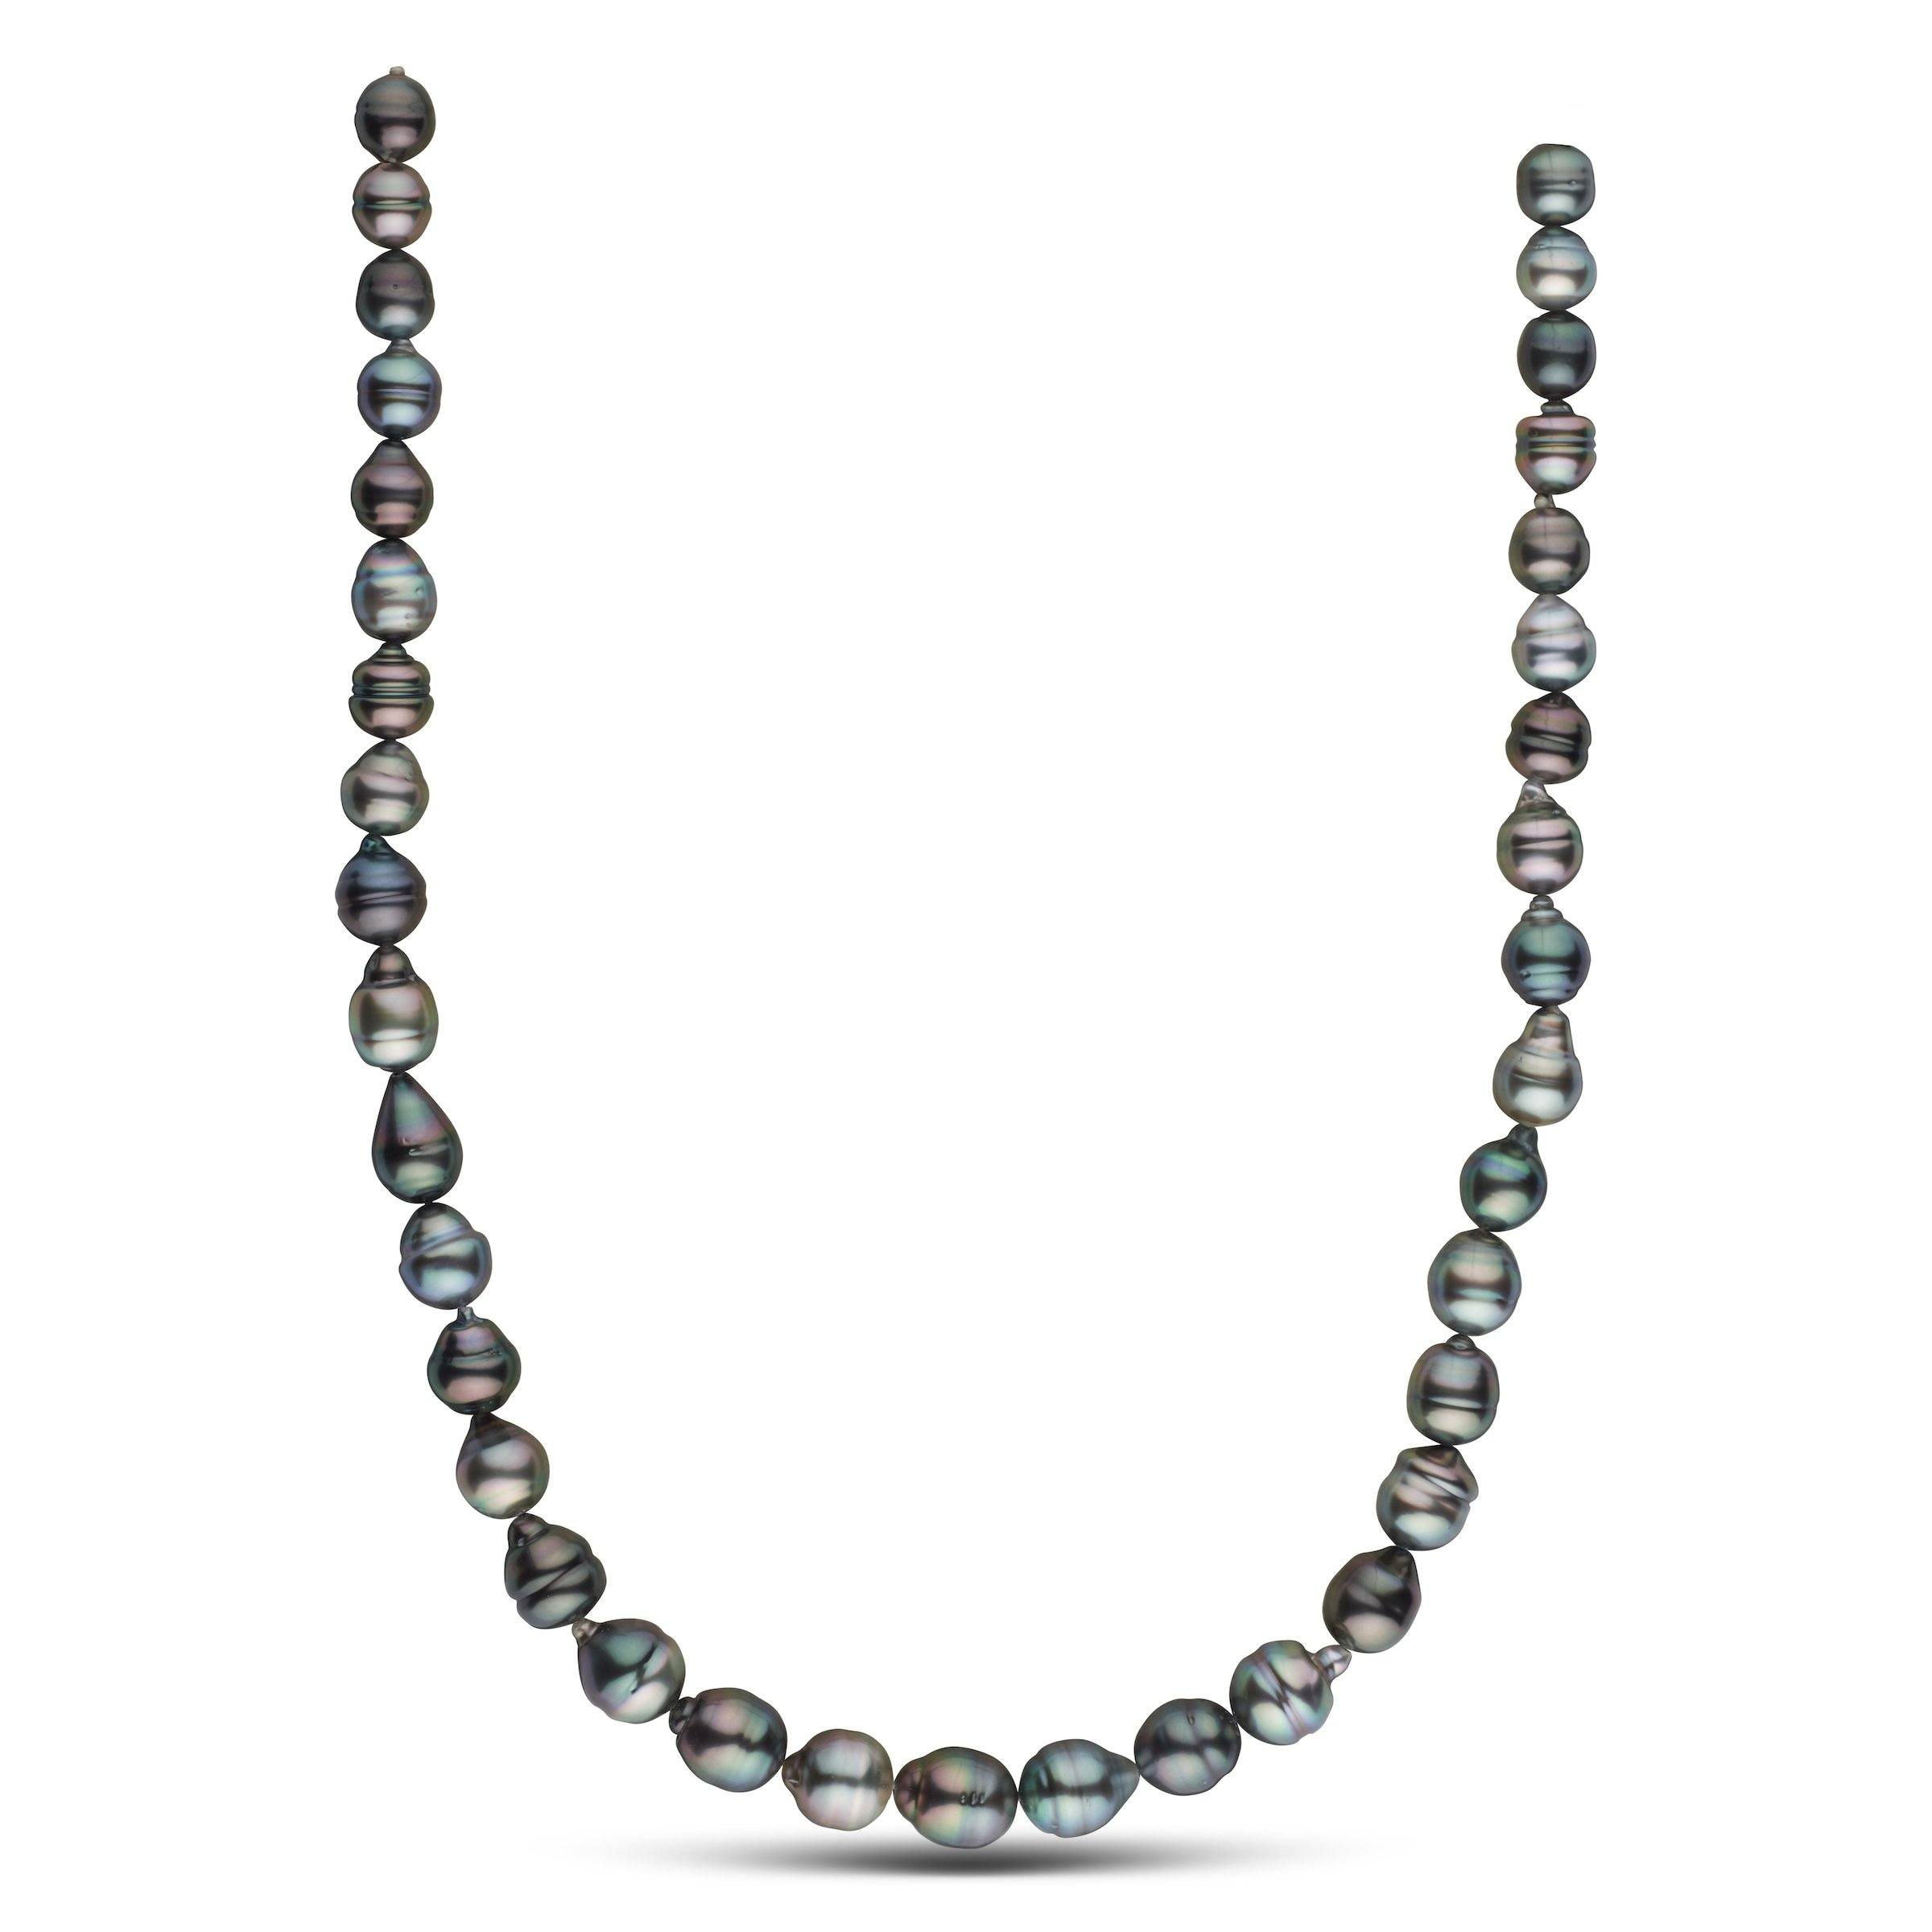 8.2-10.3 mm AAA Tahitian Baroque Pearl Necklace